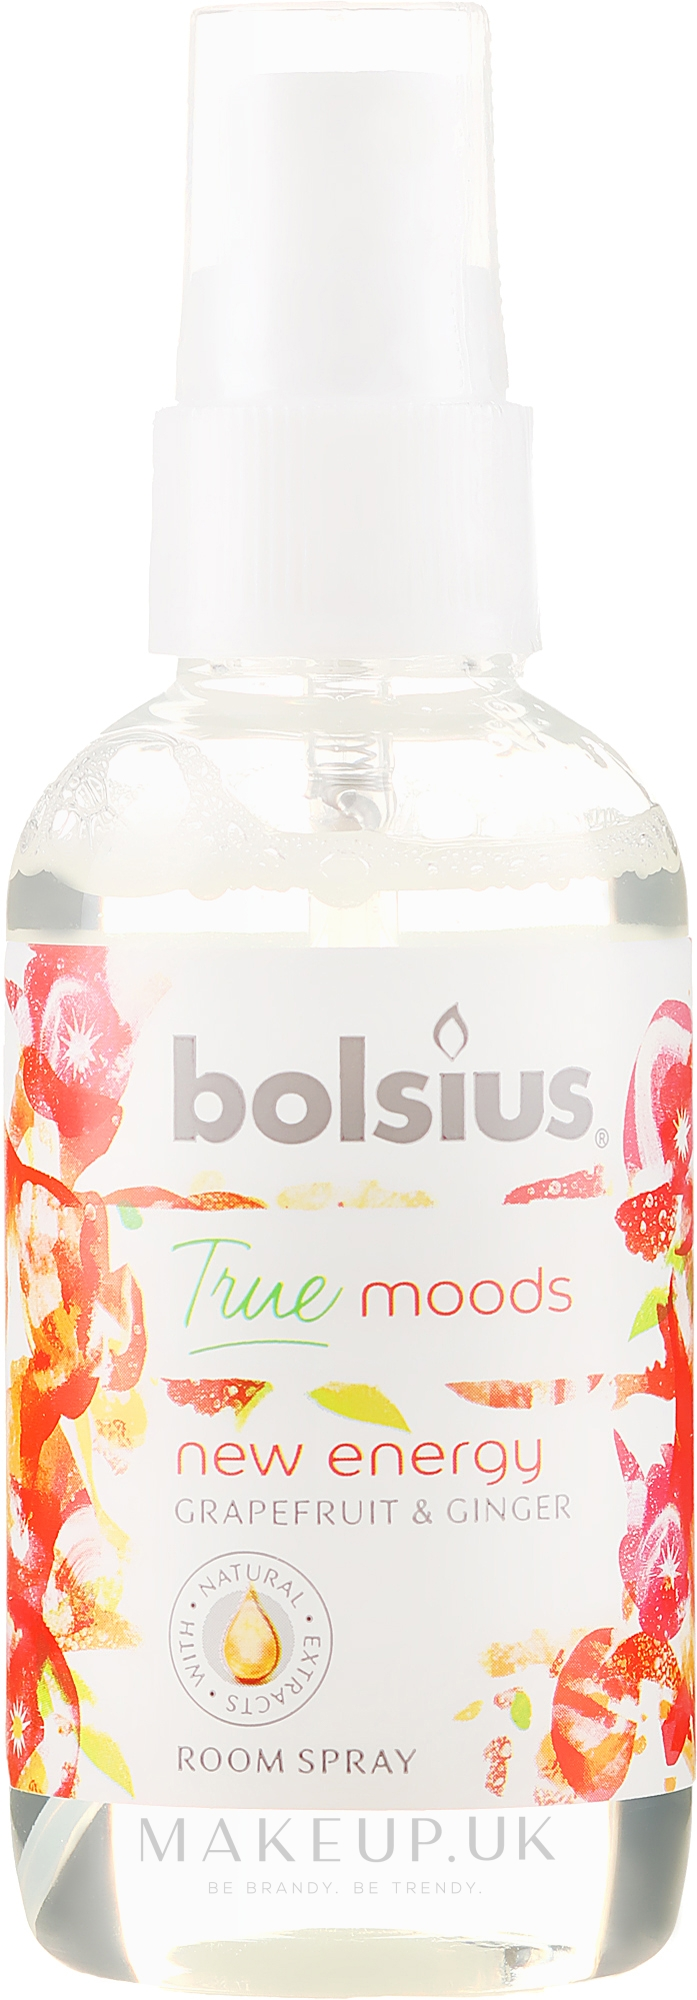 "Aromatic Spray ""Grapefruit and Ginger"" - Bolsius Room Spray True Moods New Energy — photo 75 ml"